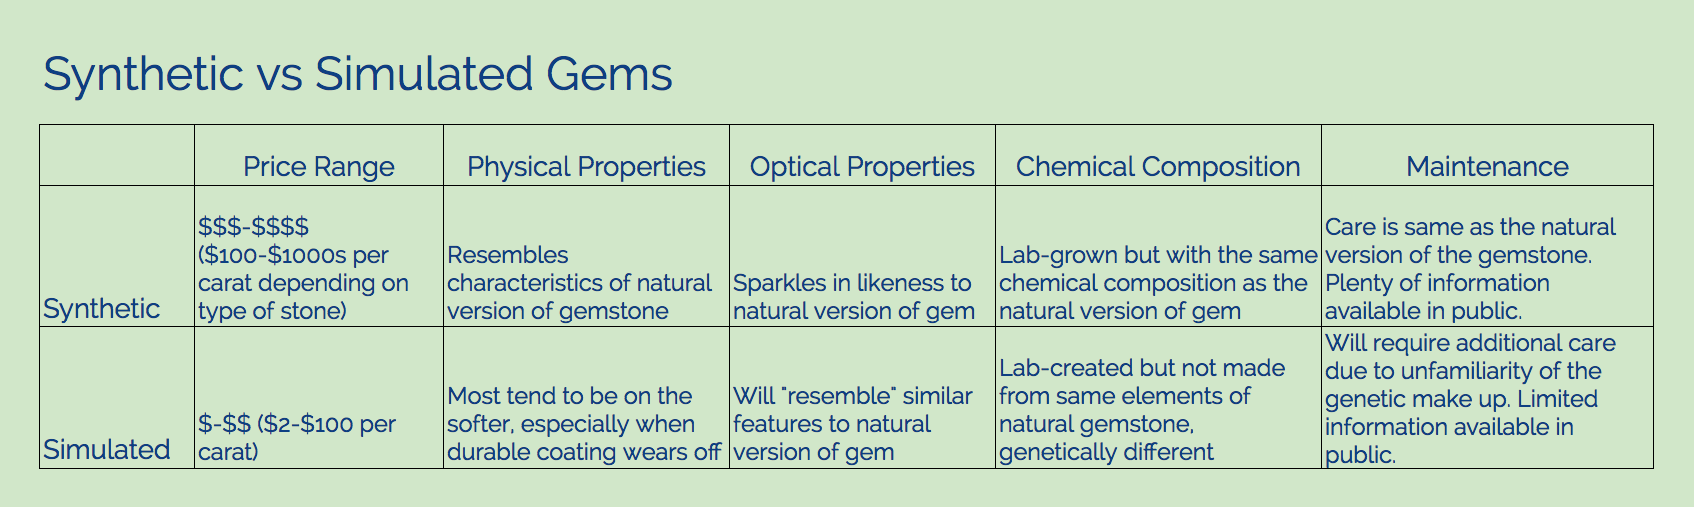 Synthetic vs. Simulated Gems Comparison Chart